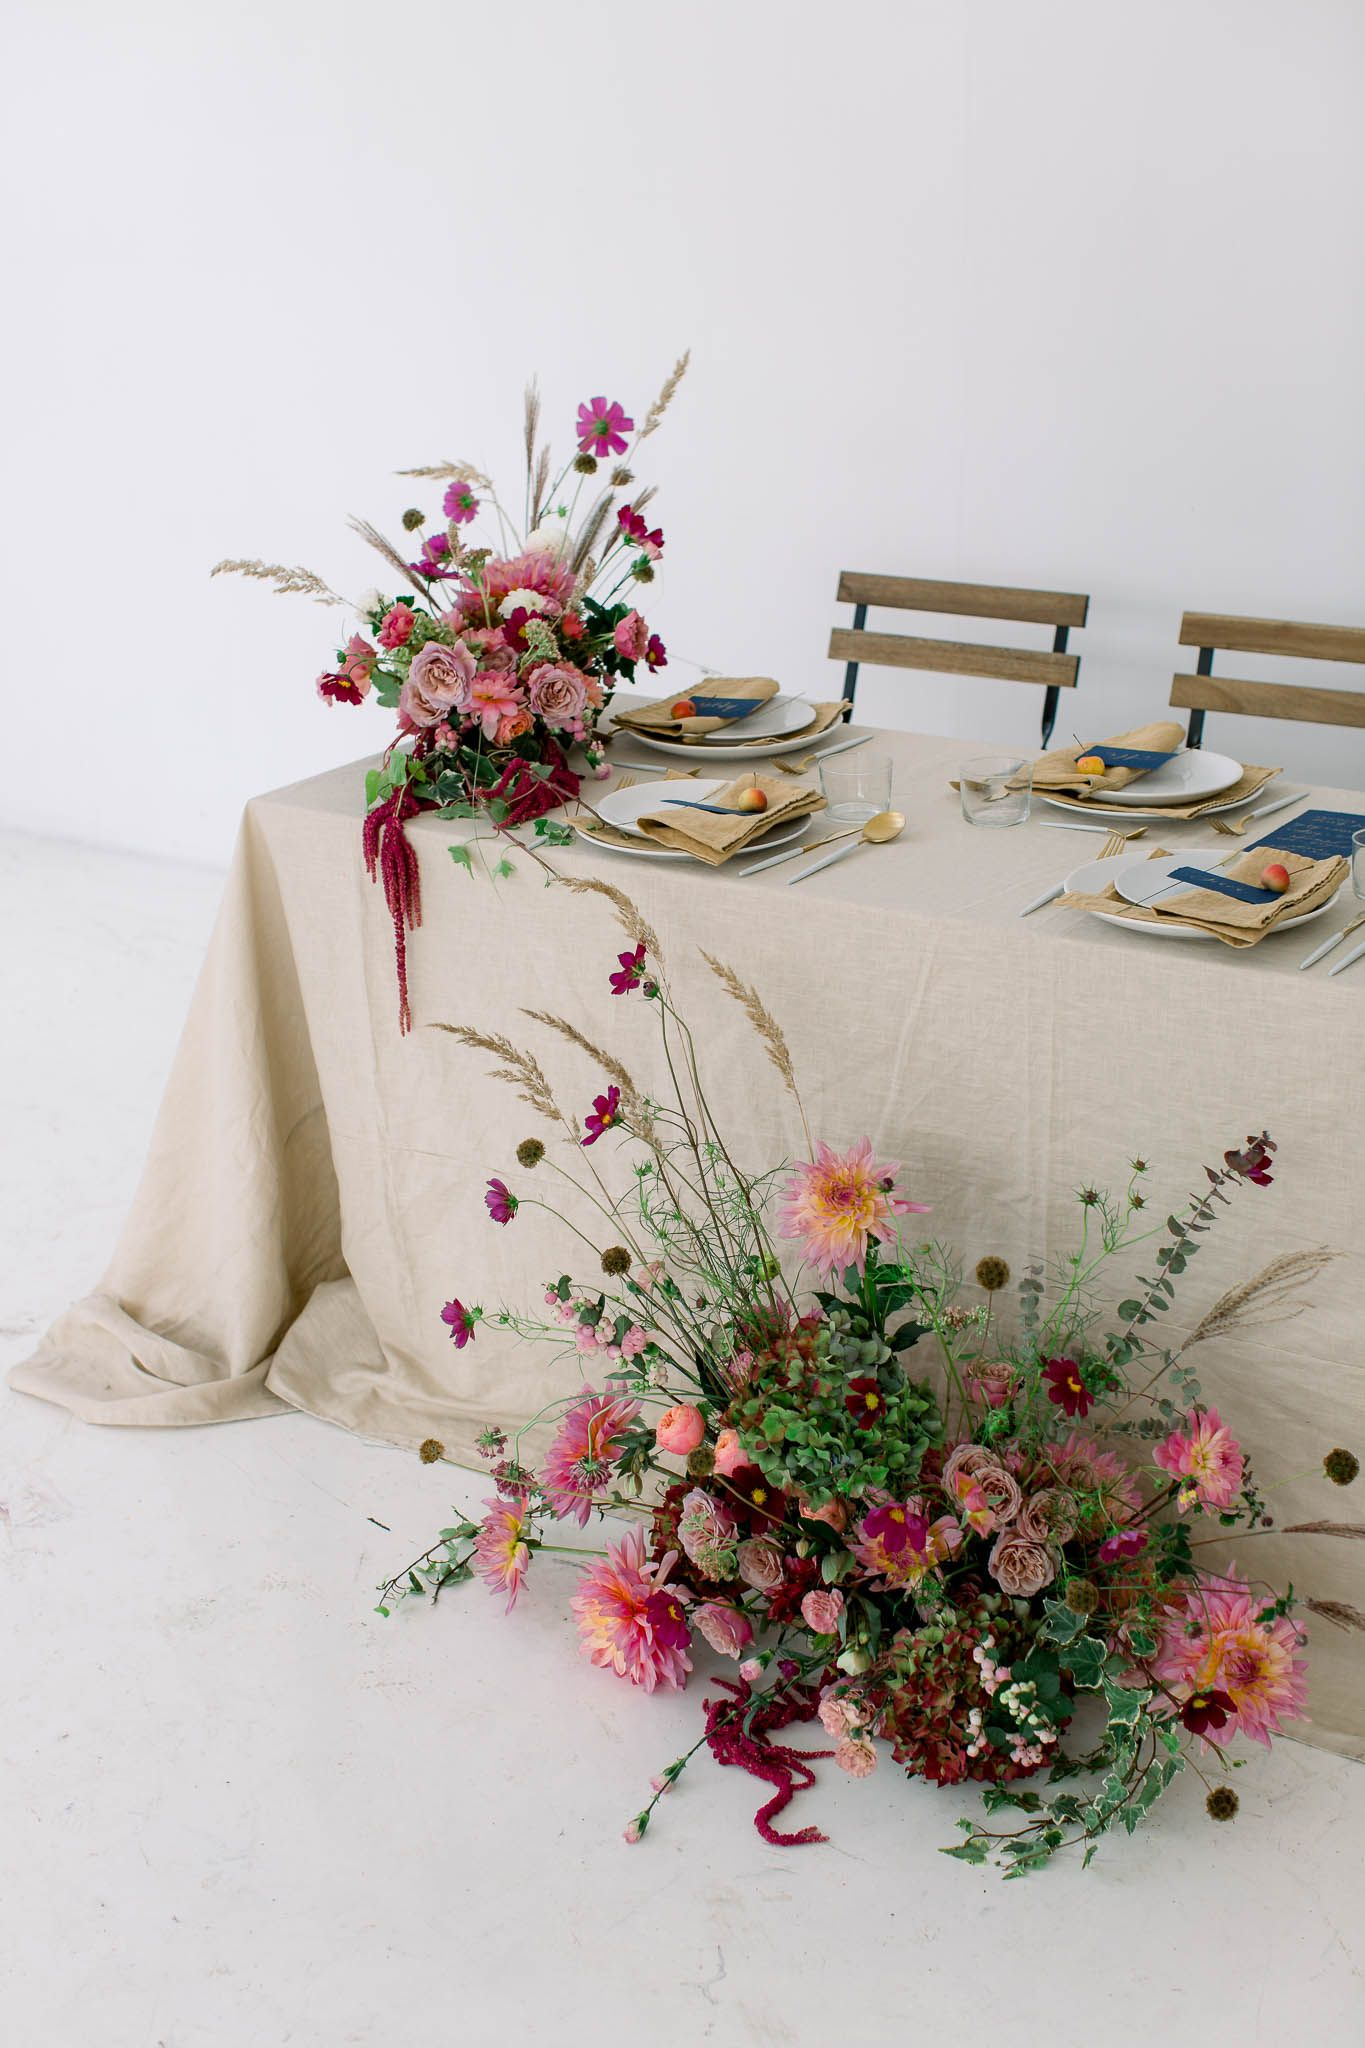 Autumn Minimalistic Wedding Decorations With Dusty Pink And Brown